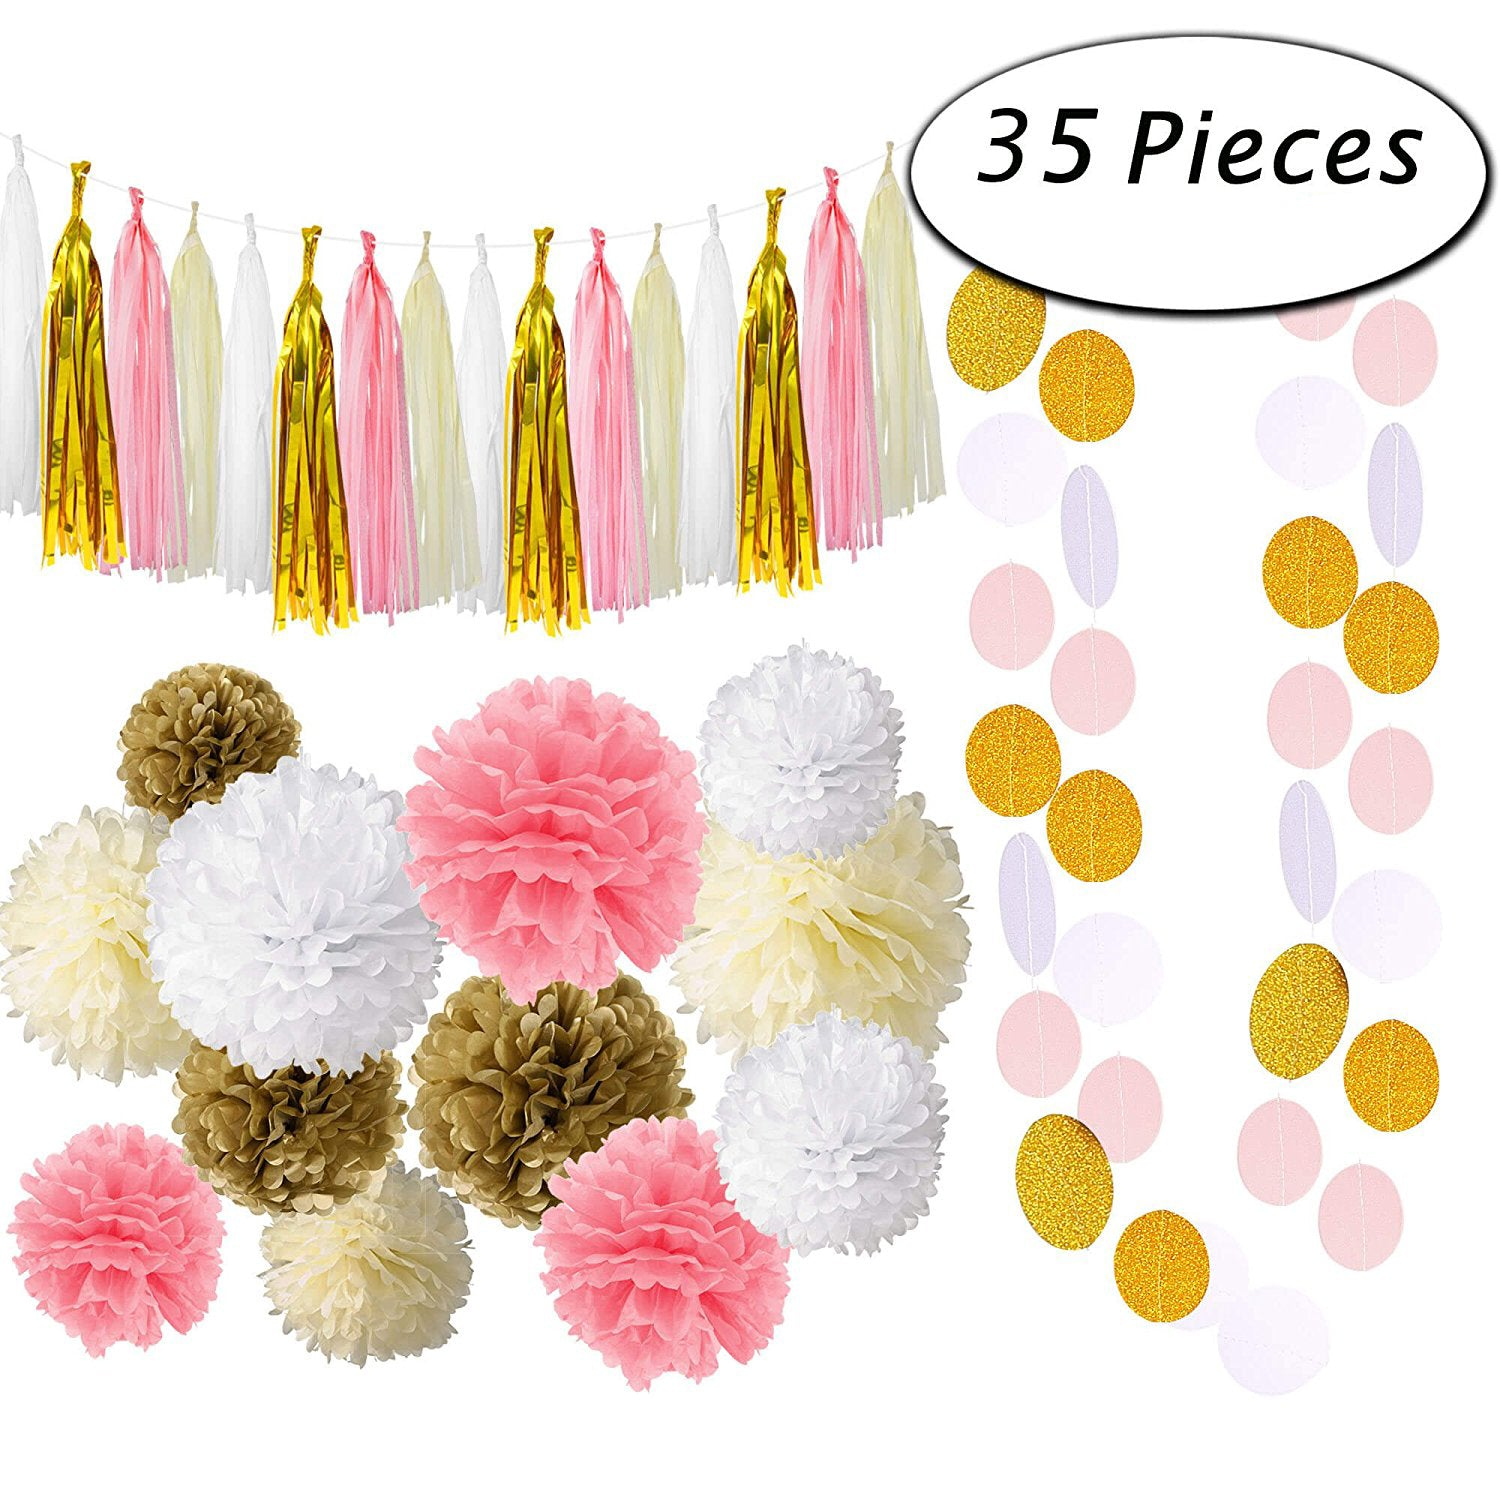 Pink and Gold Party Supplies with Tissue Pom Tassel Garland Party Decorations (35 pcs)